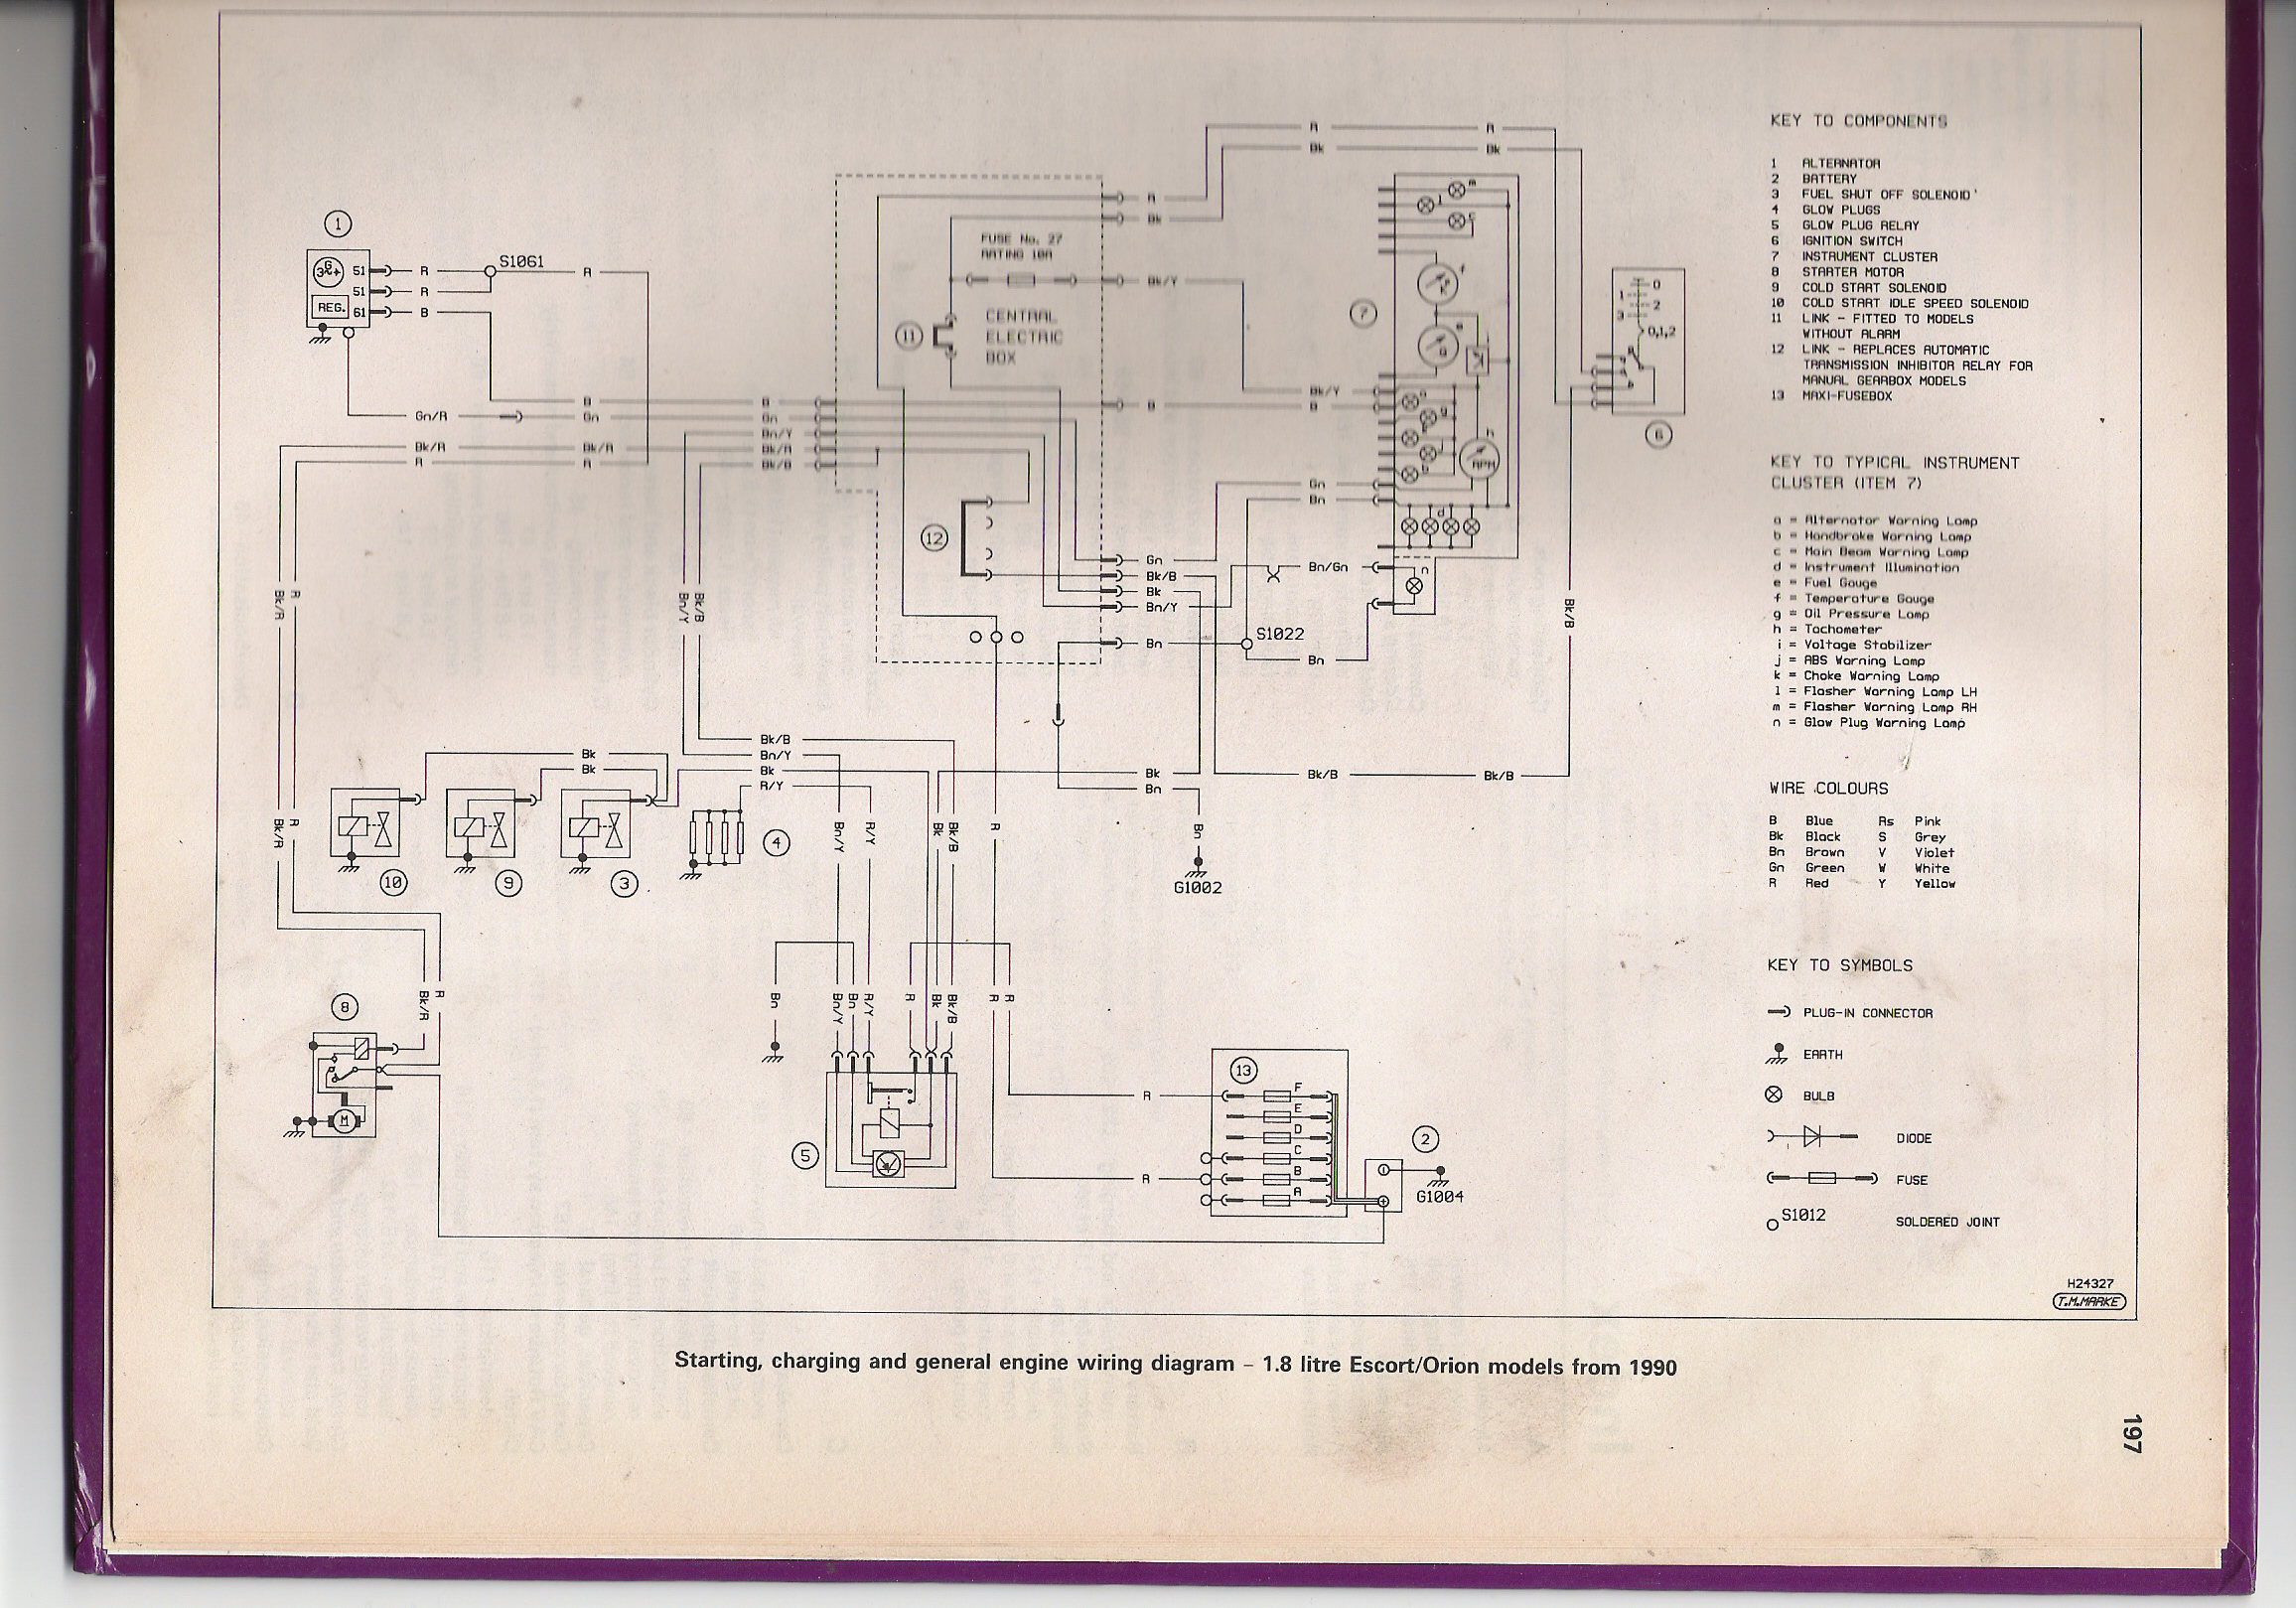 fordwiringdl mk4 wiring diagram wiring diagram for mk4 jetta power seats escort mk1 wiring diagram at gsmportal.co